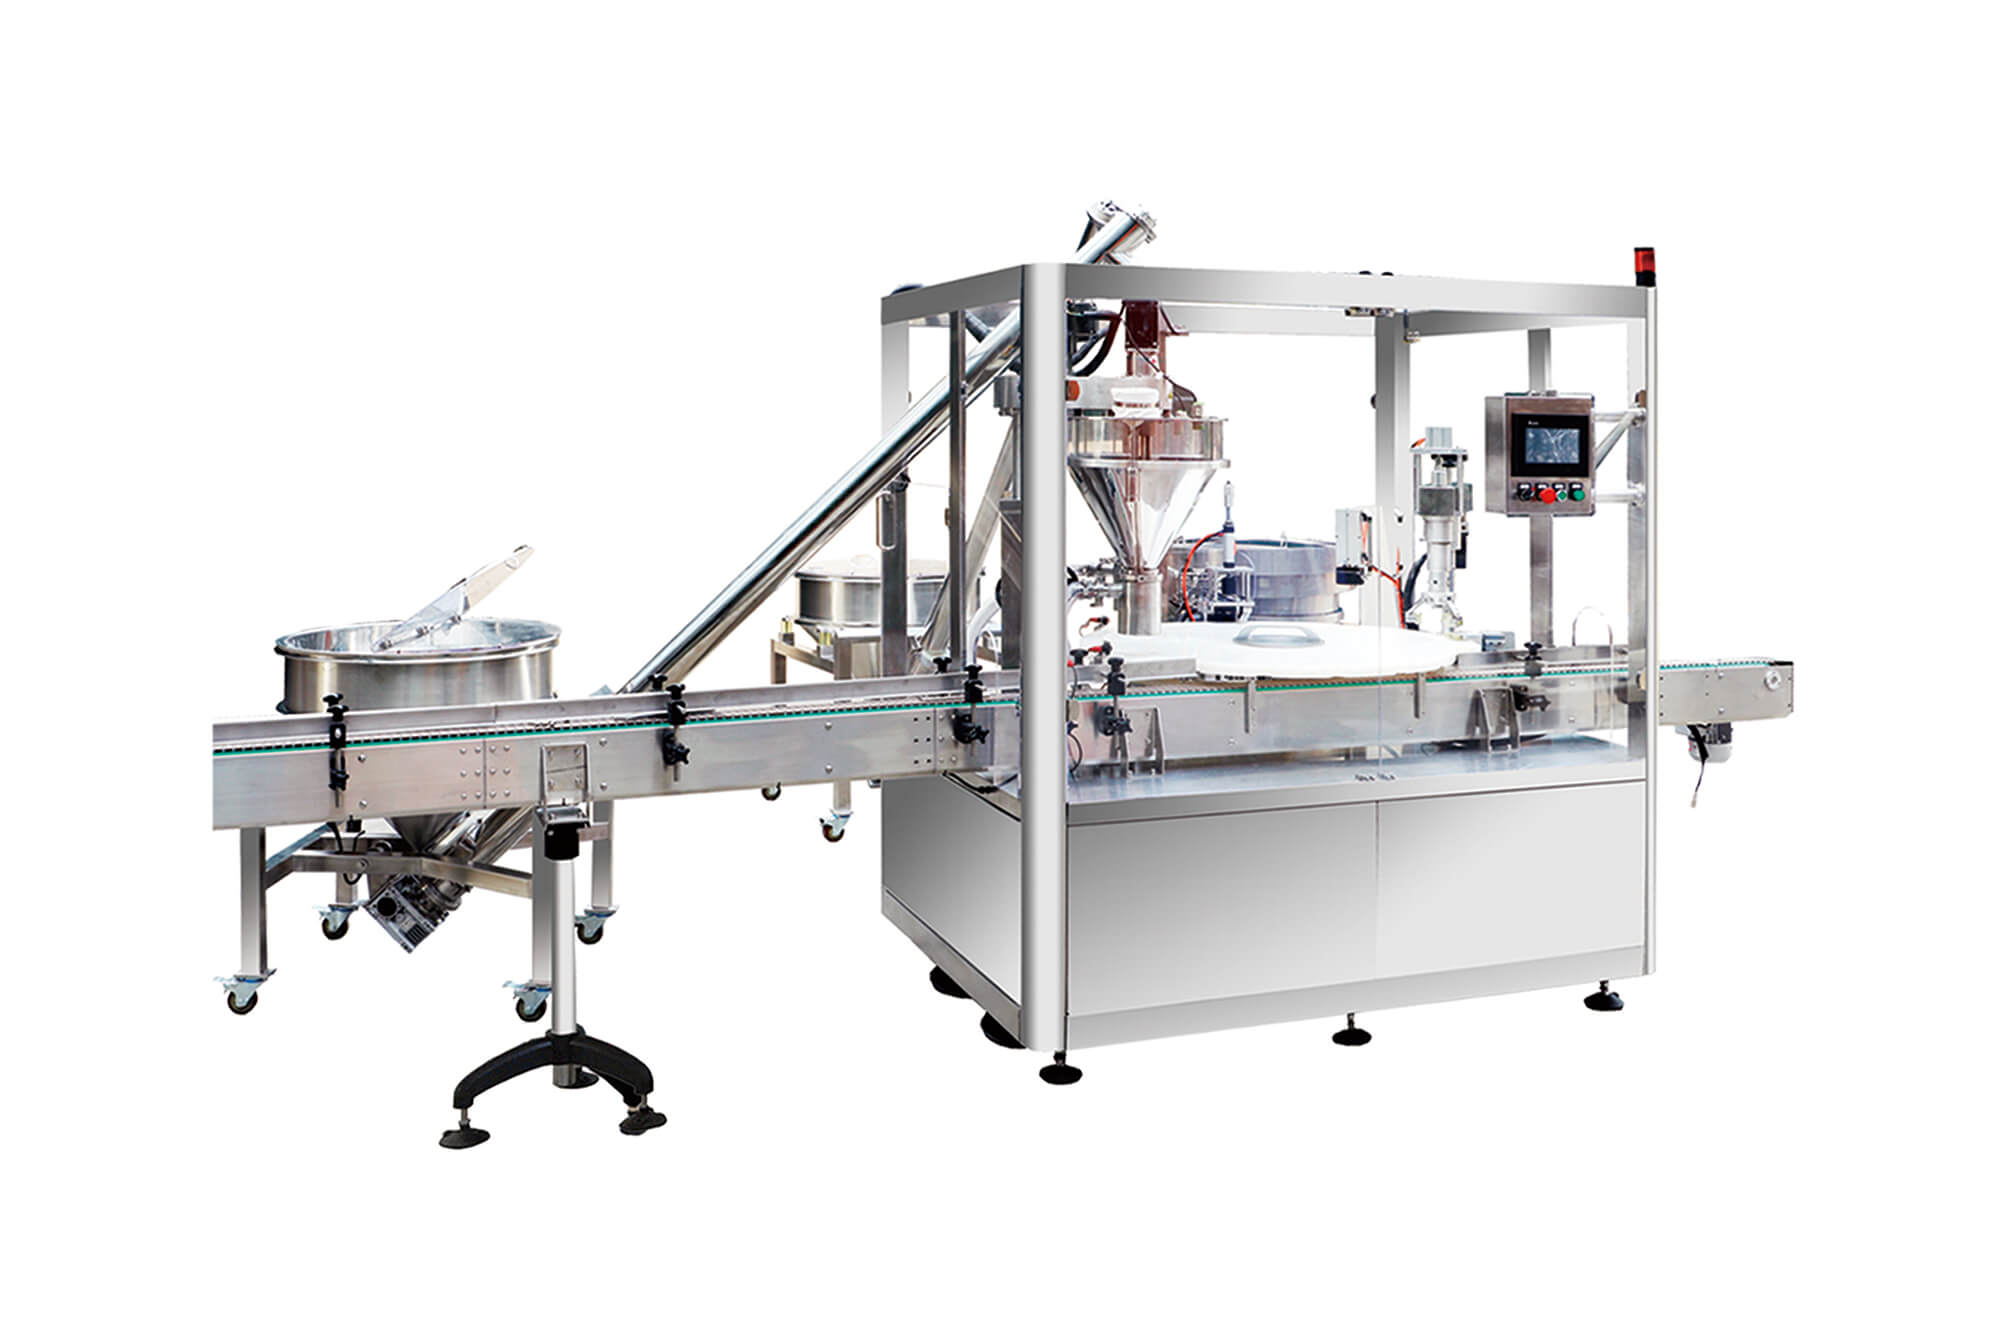 XT-FC30 Automatic Powder Filling Machine